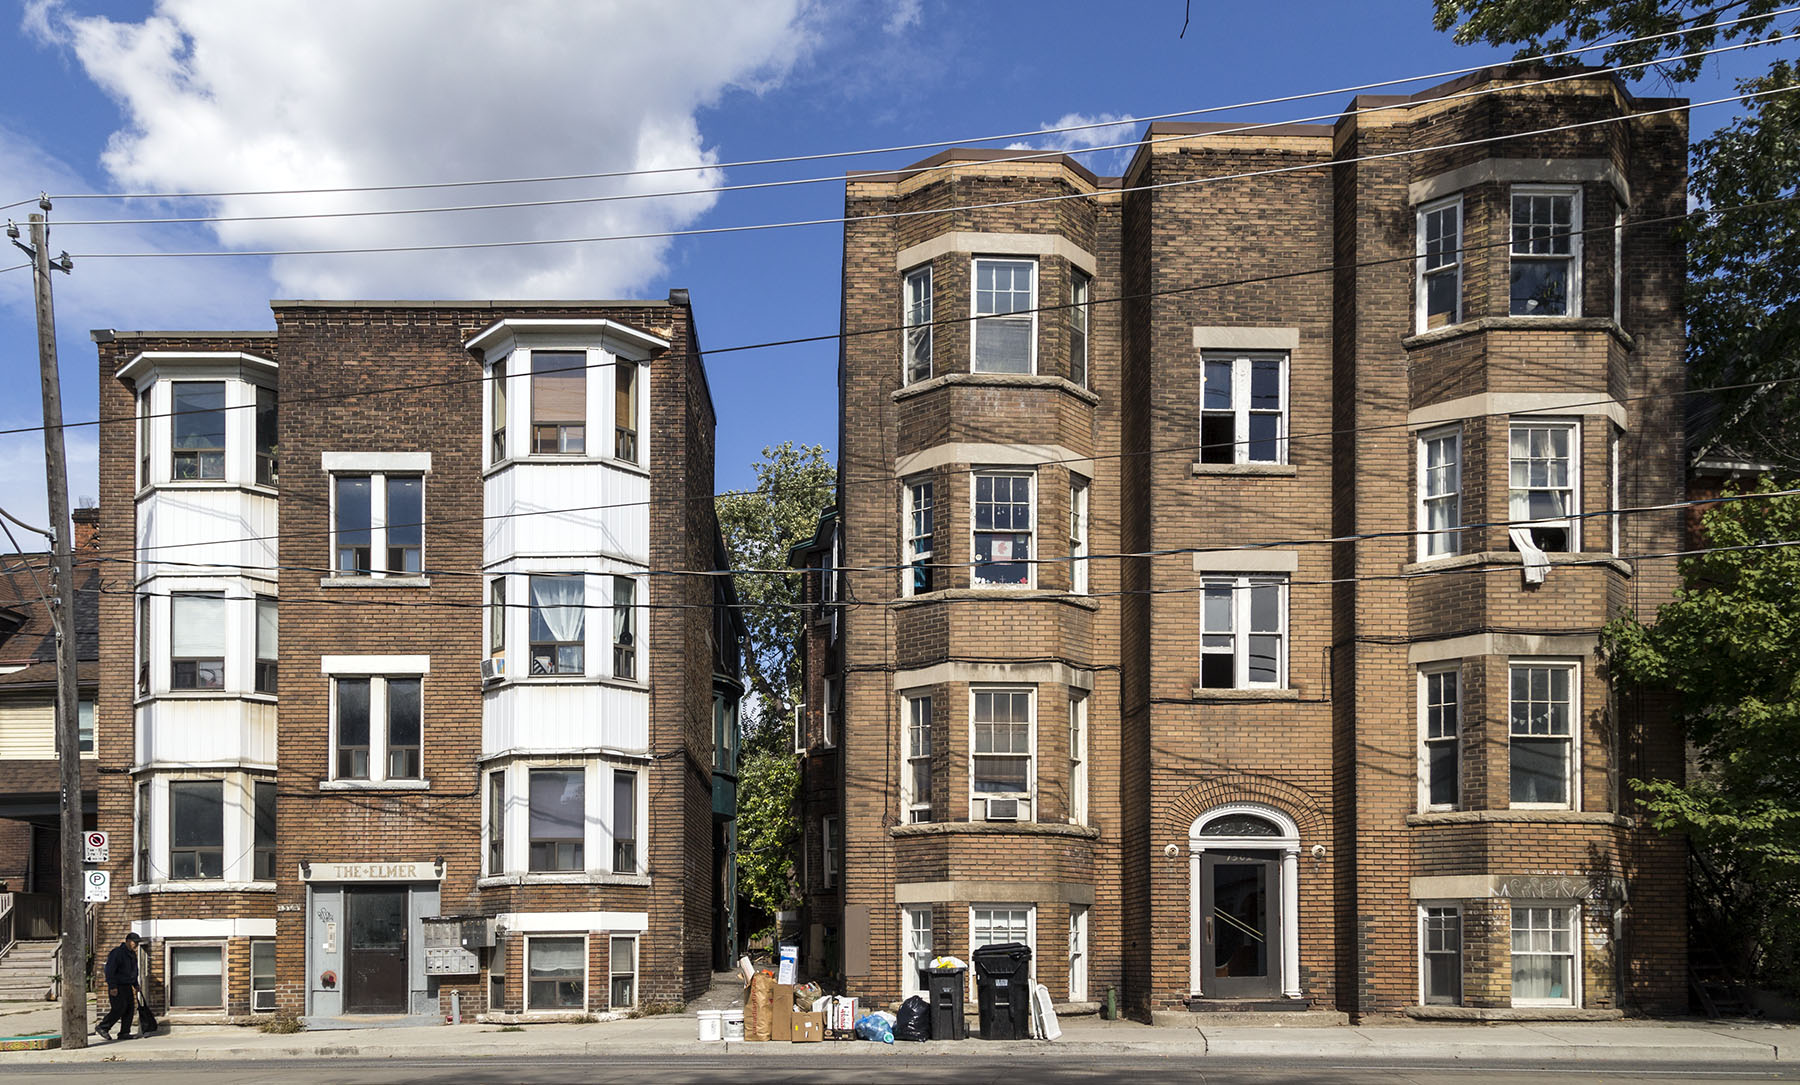 20161003. Two 91 year old Parkdale walk-up apartments facing sou